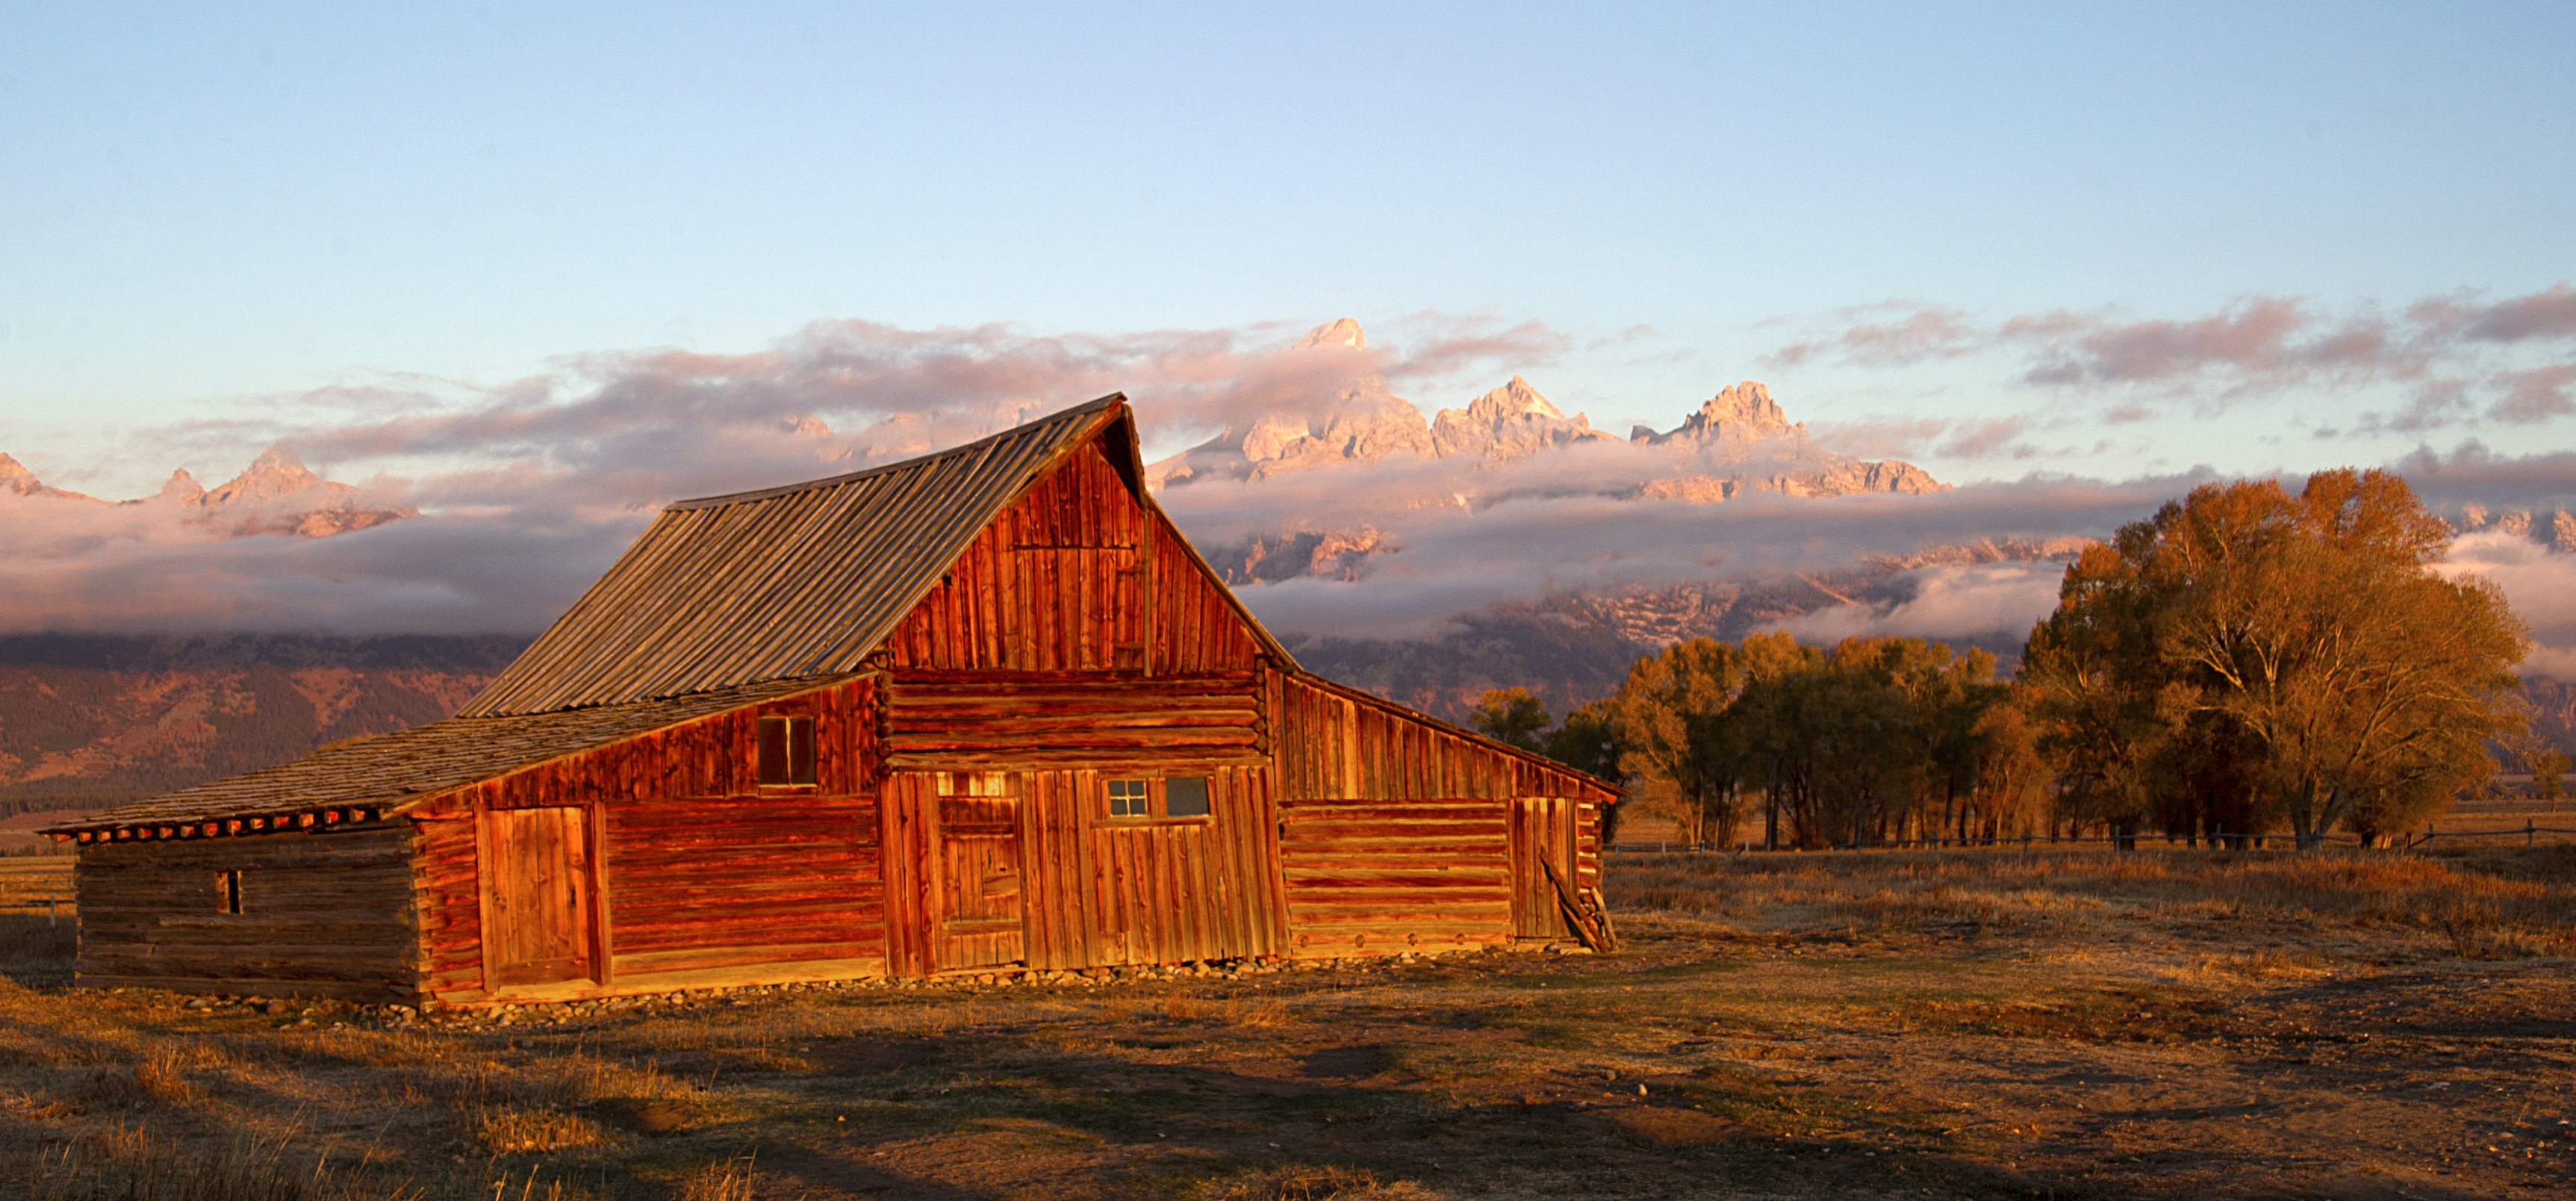 The sun hits the tips of the Grand Tetons behind the Moulton barn October 5, 2012 in the Grand Teton National Park in Wyoming. Grand Teton National Park is located in northwestern Wyoming. Approximately 310,000 acres (130,000 ha) in size, the park includes the major peaks of the 40-mile (64 km) long Teton Range as well as most of the northern sections of the valley known as Jackson Hole. AFP PHOTO/Karen BLEIER        (Photo credit should read KAREN BLEIER/AFP/Getty Images)